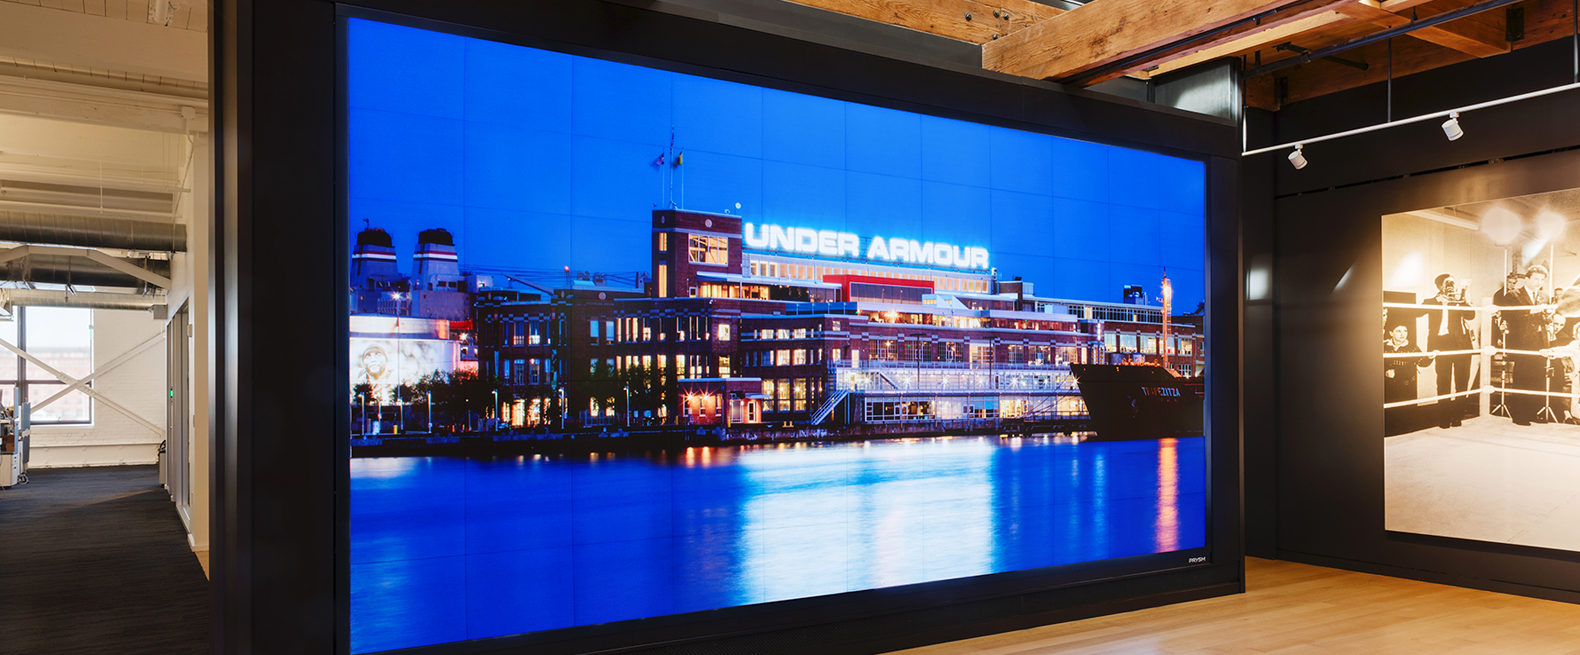 Prysm Video Wall at Under Armour